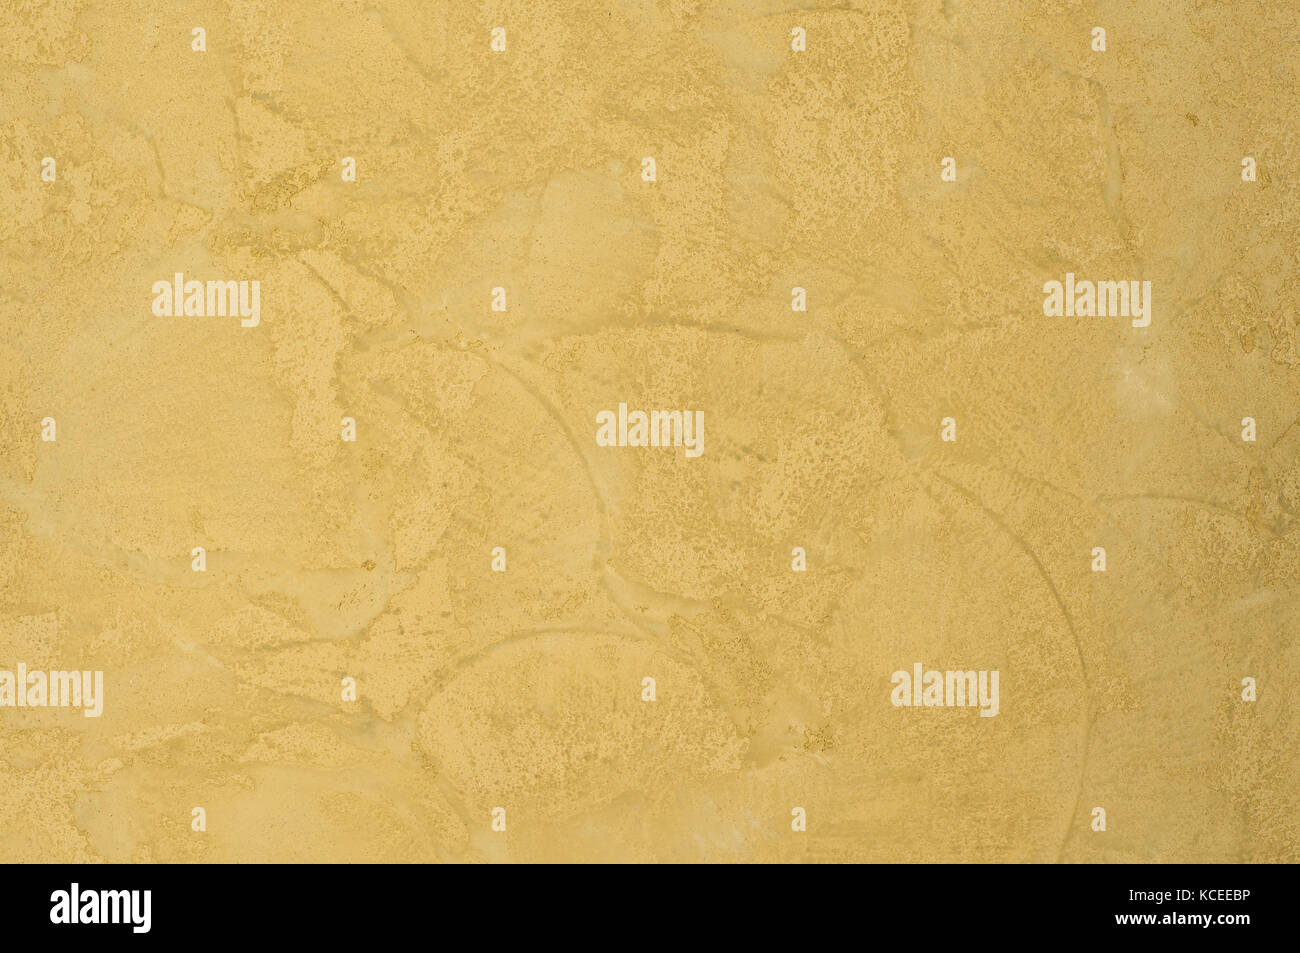 Gold Plaster Stock Photos & Gold Plaster Stock Images - Page 3 - Alamy